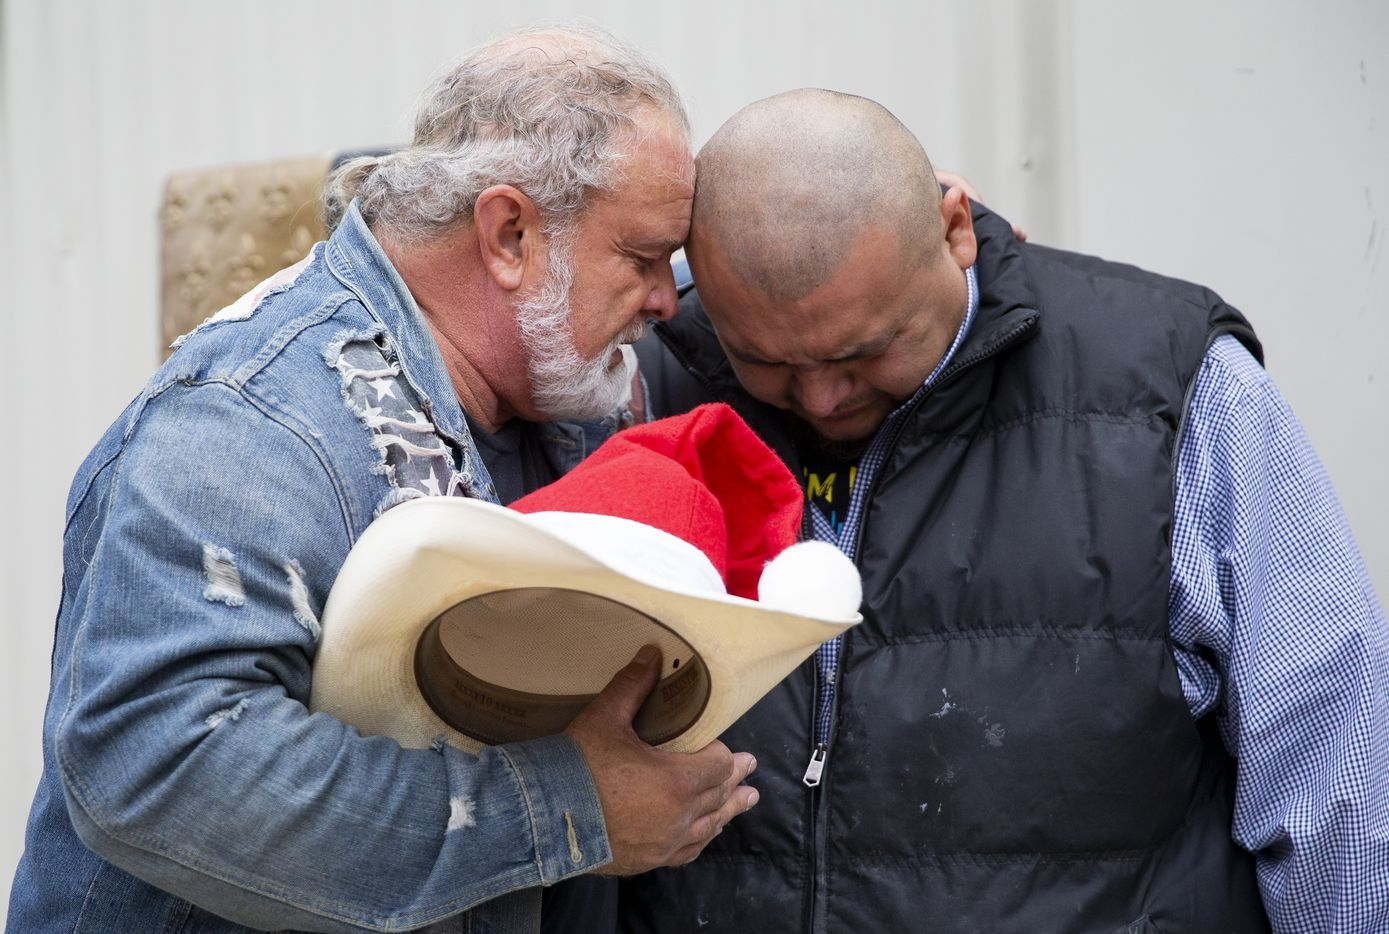 Leon Birdd (left) prayed over local faith leader and volunteer Israel Alonso as he came to load up from the Birdds' food pantry in Mesquite to take back to his community on Dec. 20, 2019.